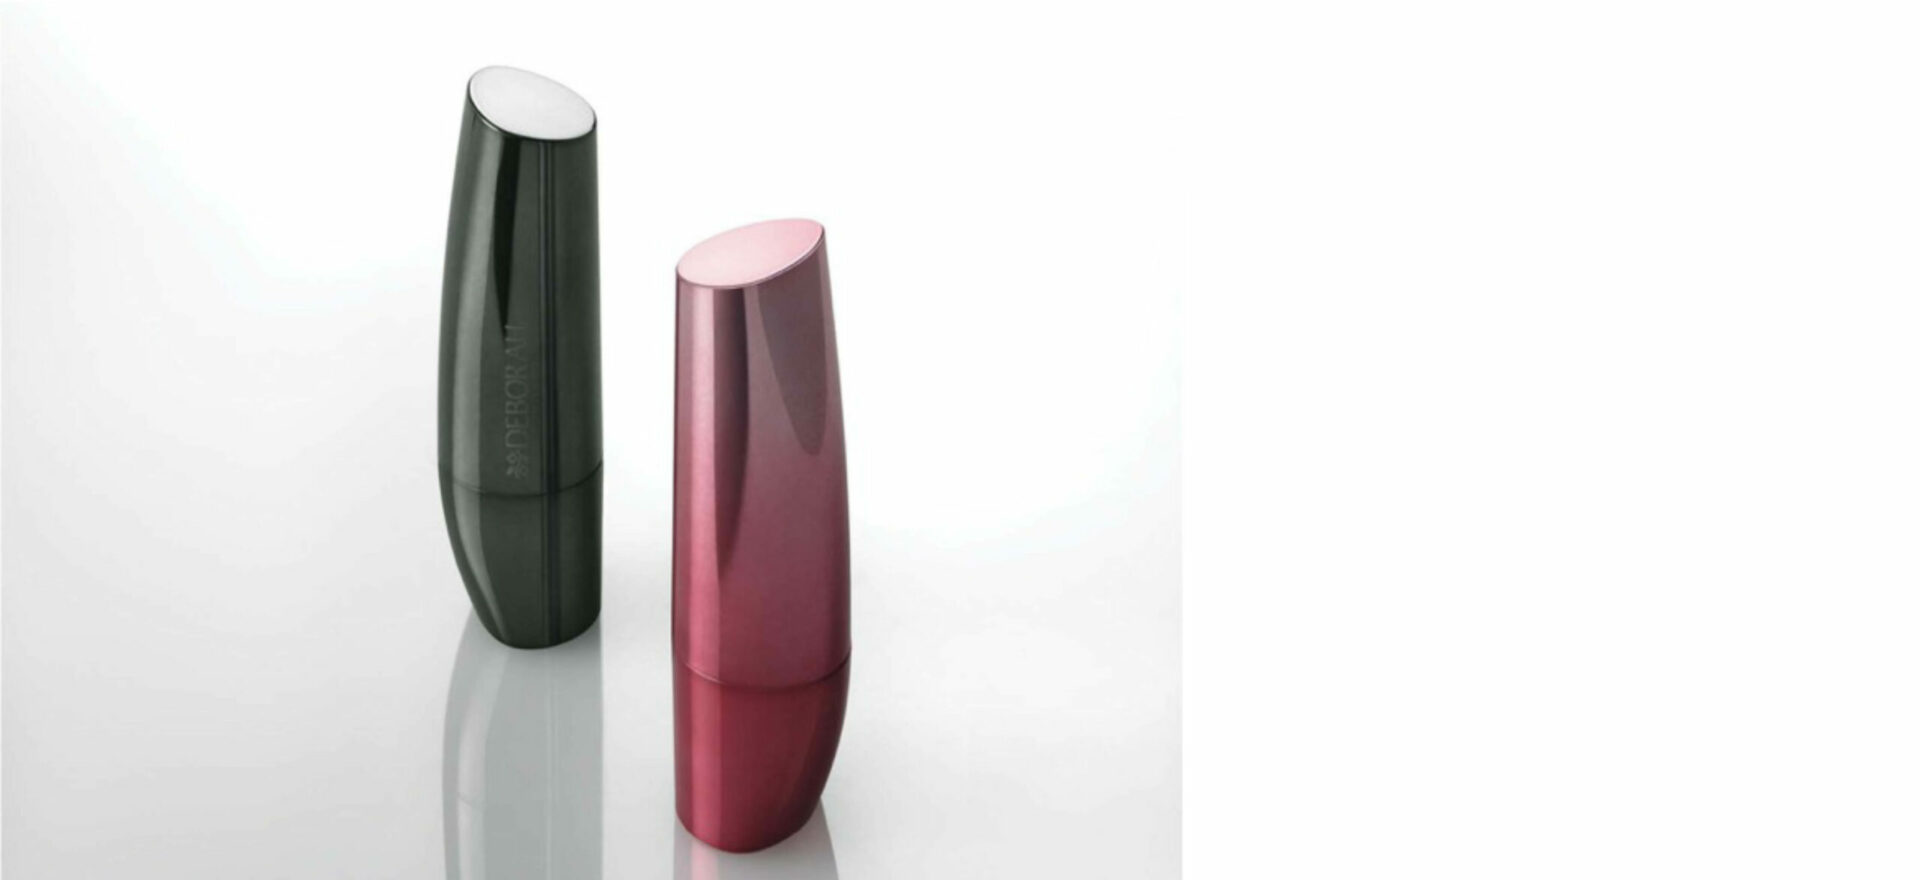 Two lipsticks standing up vertically, one black and one pink in a white background. In 2007 the packaging of the Bioetyc skincare line won the Good Design Award.